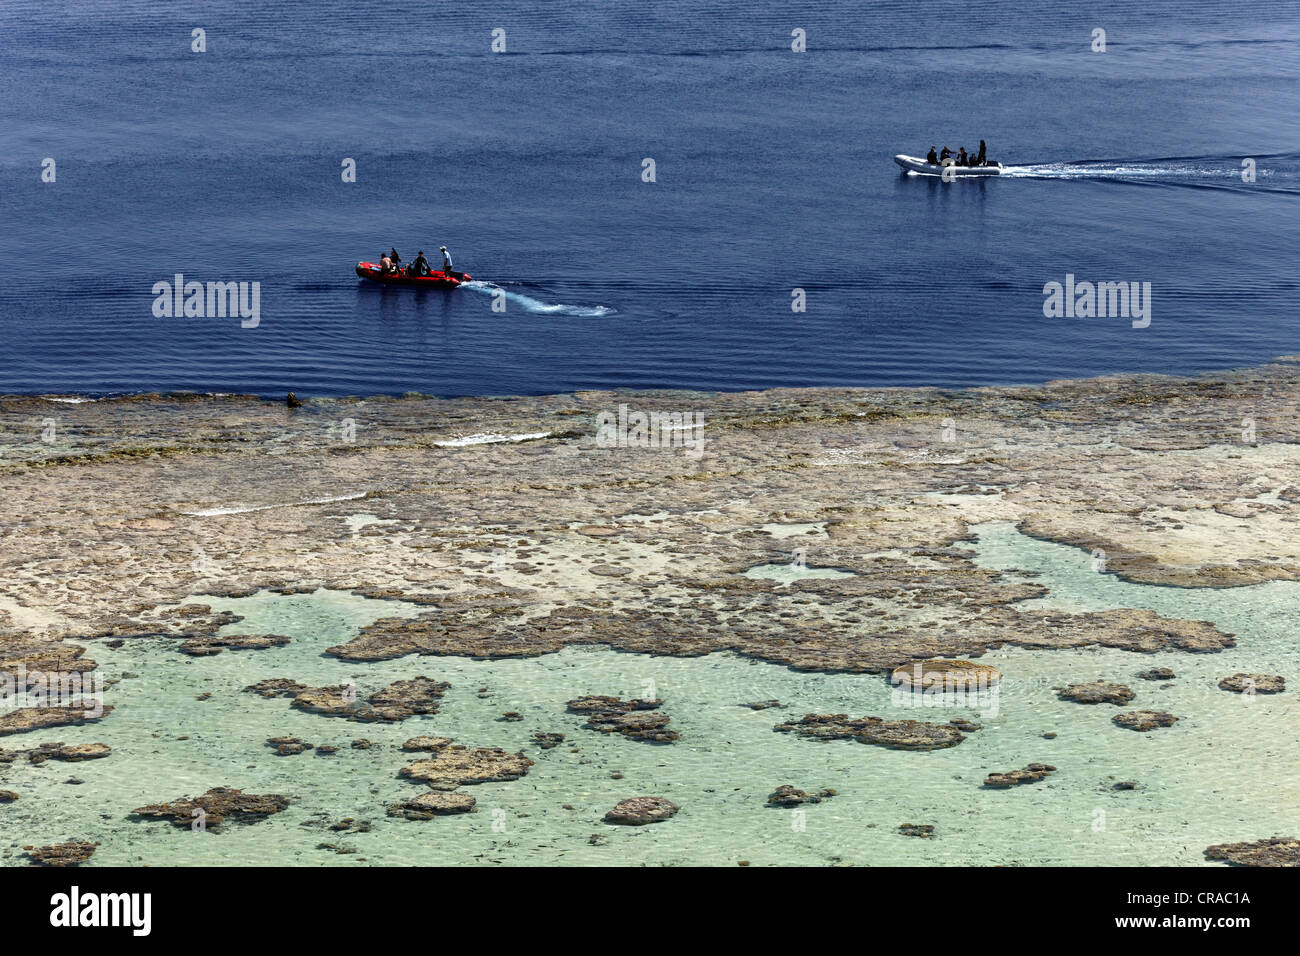 Rubber dinghys pick up divers from the reef top, Daedalus Reef, Egypt, Red Sea, Africa - Stock Image